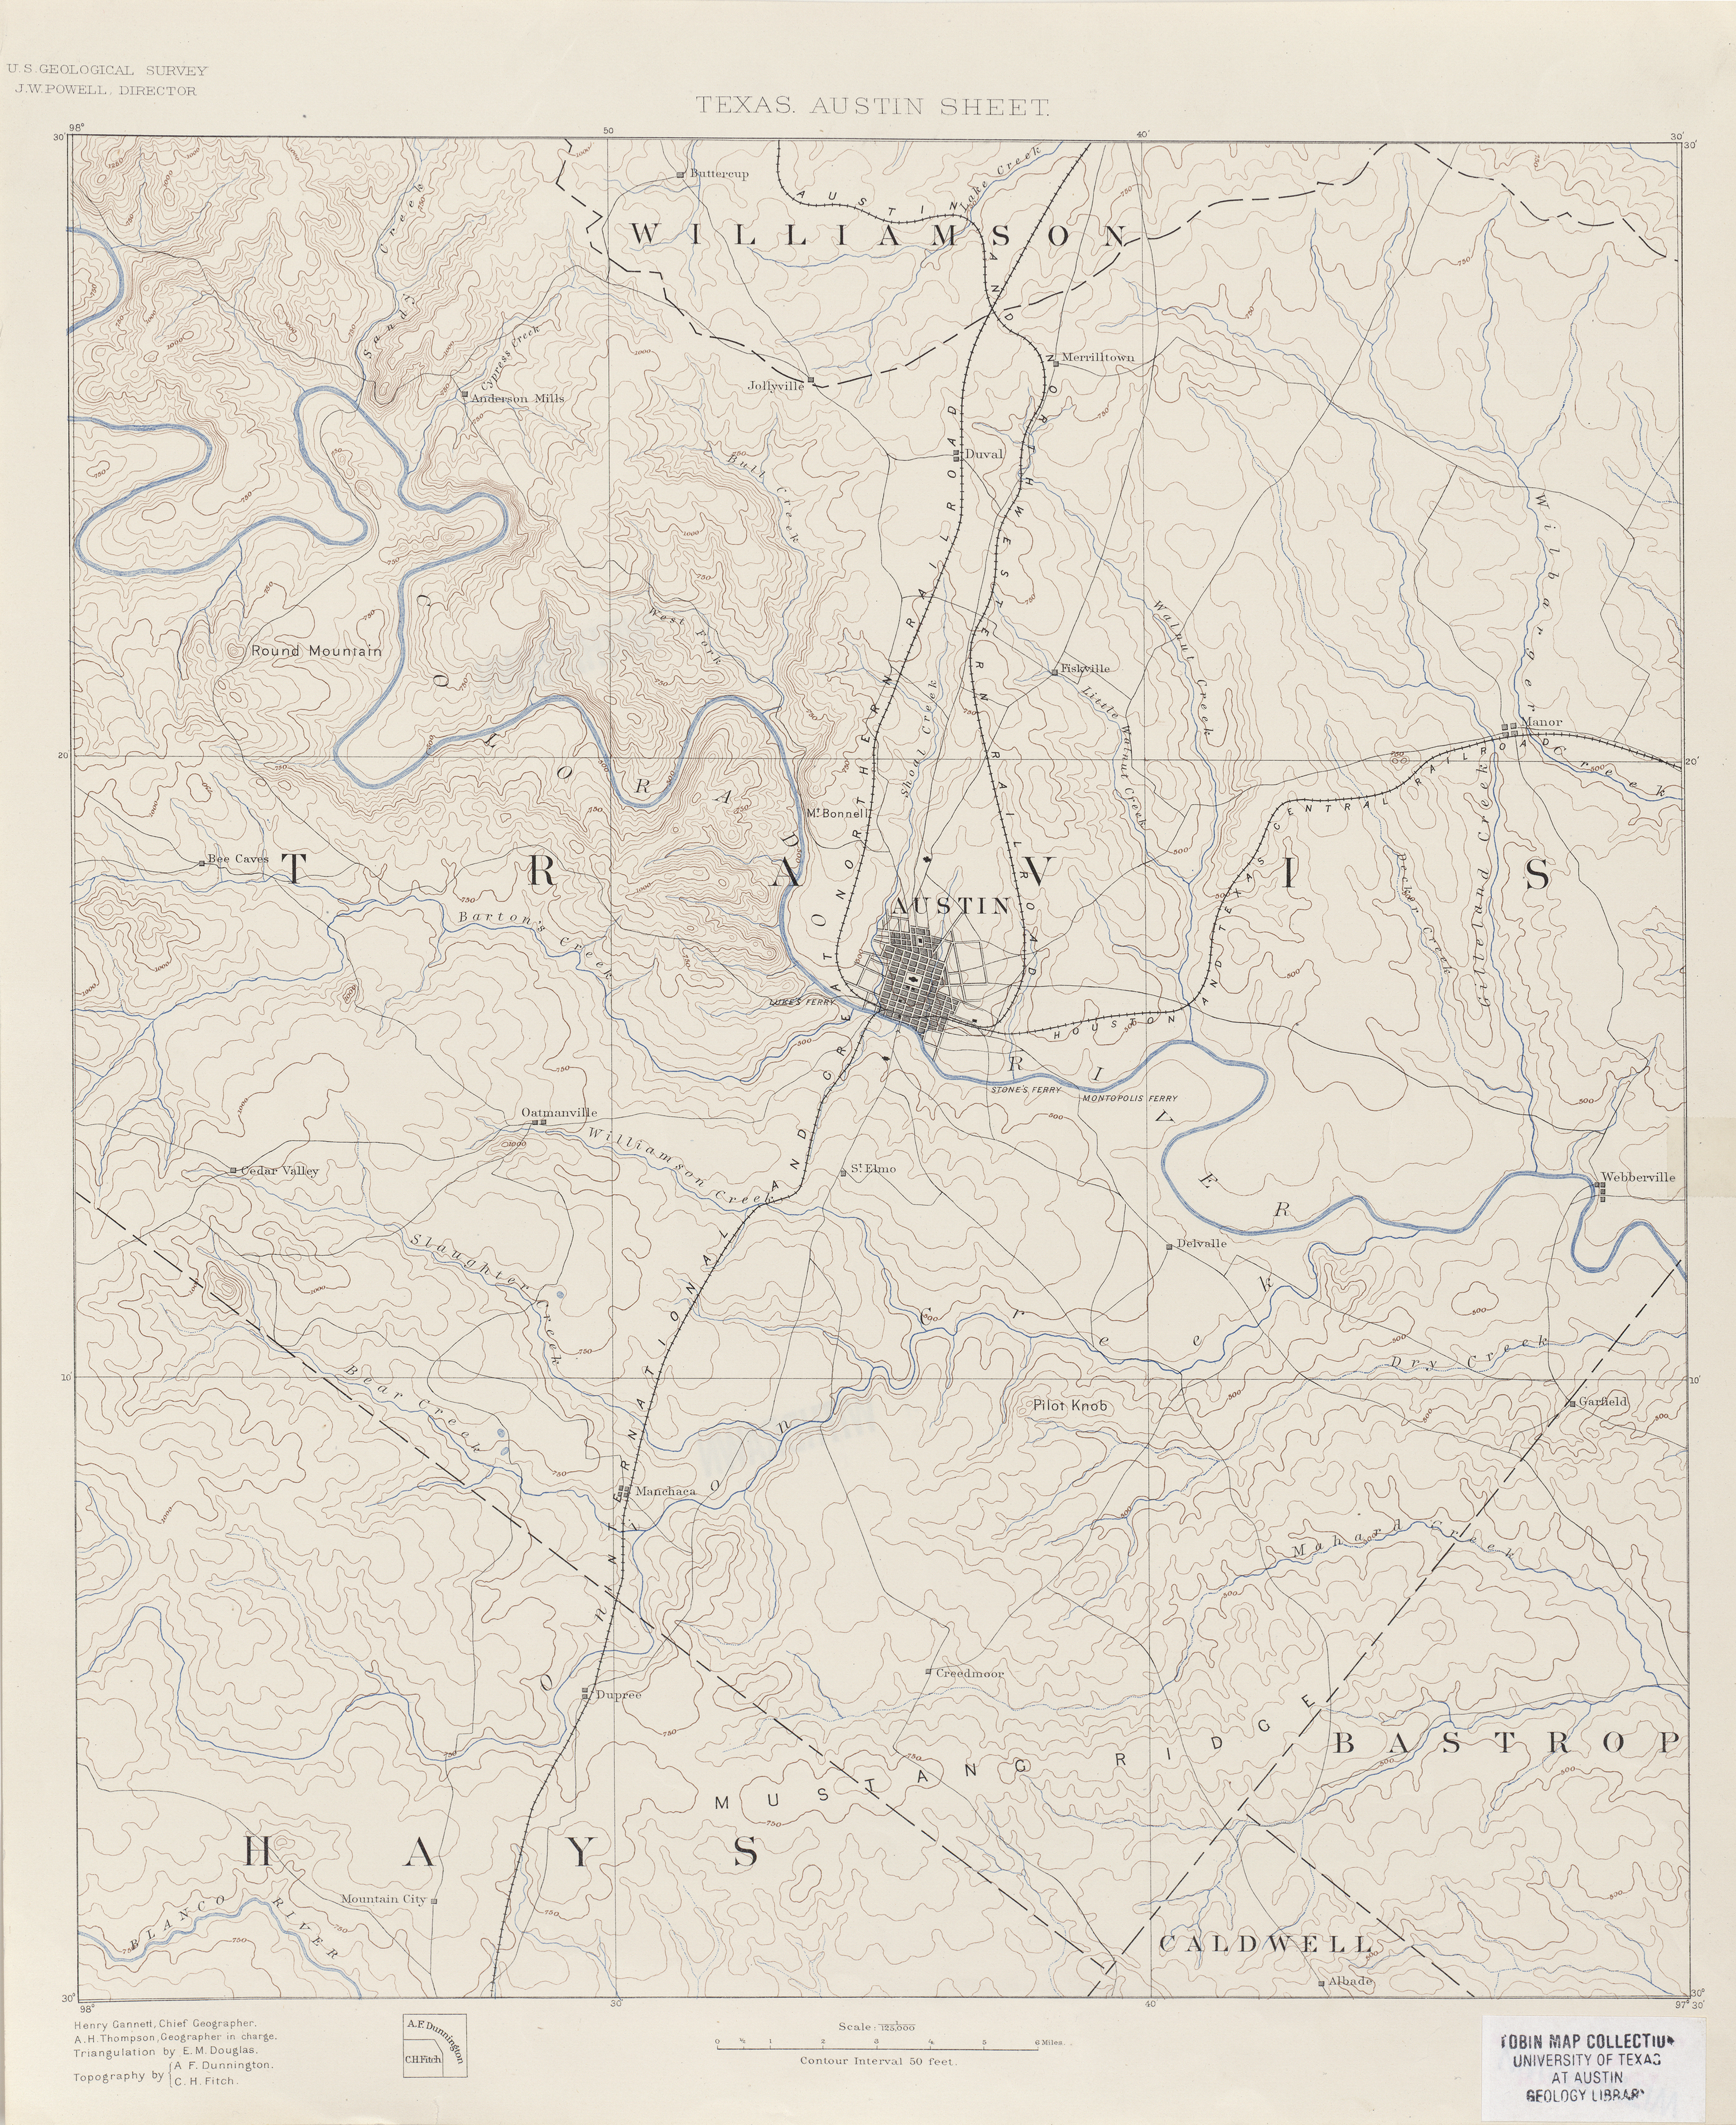 Historical Maps Of Austin Bryker Woods Neighborhood - Topographical map of texas